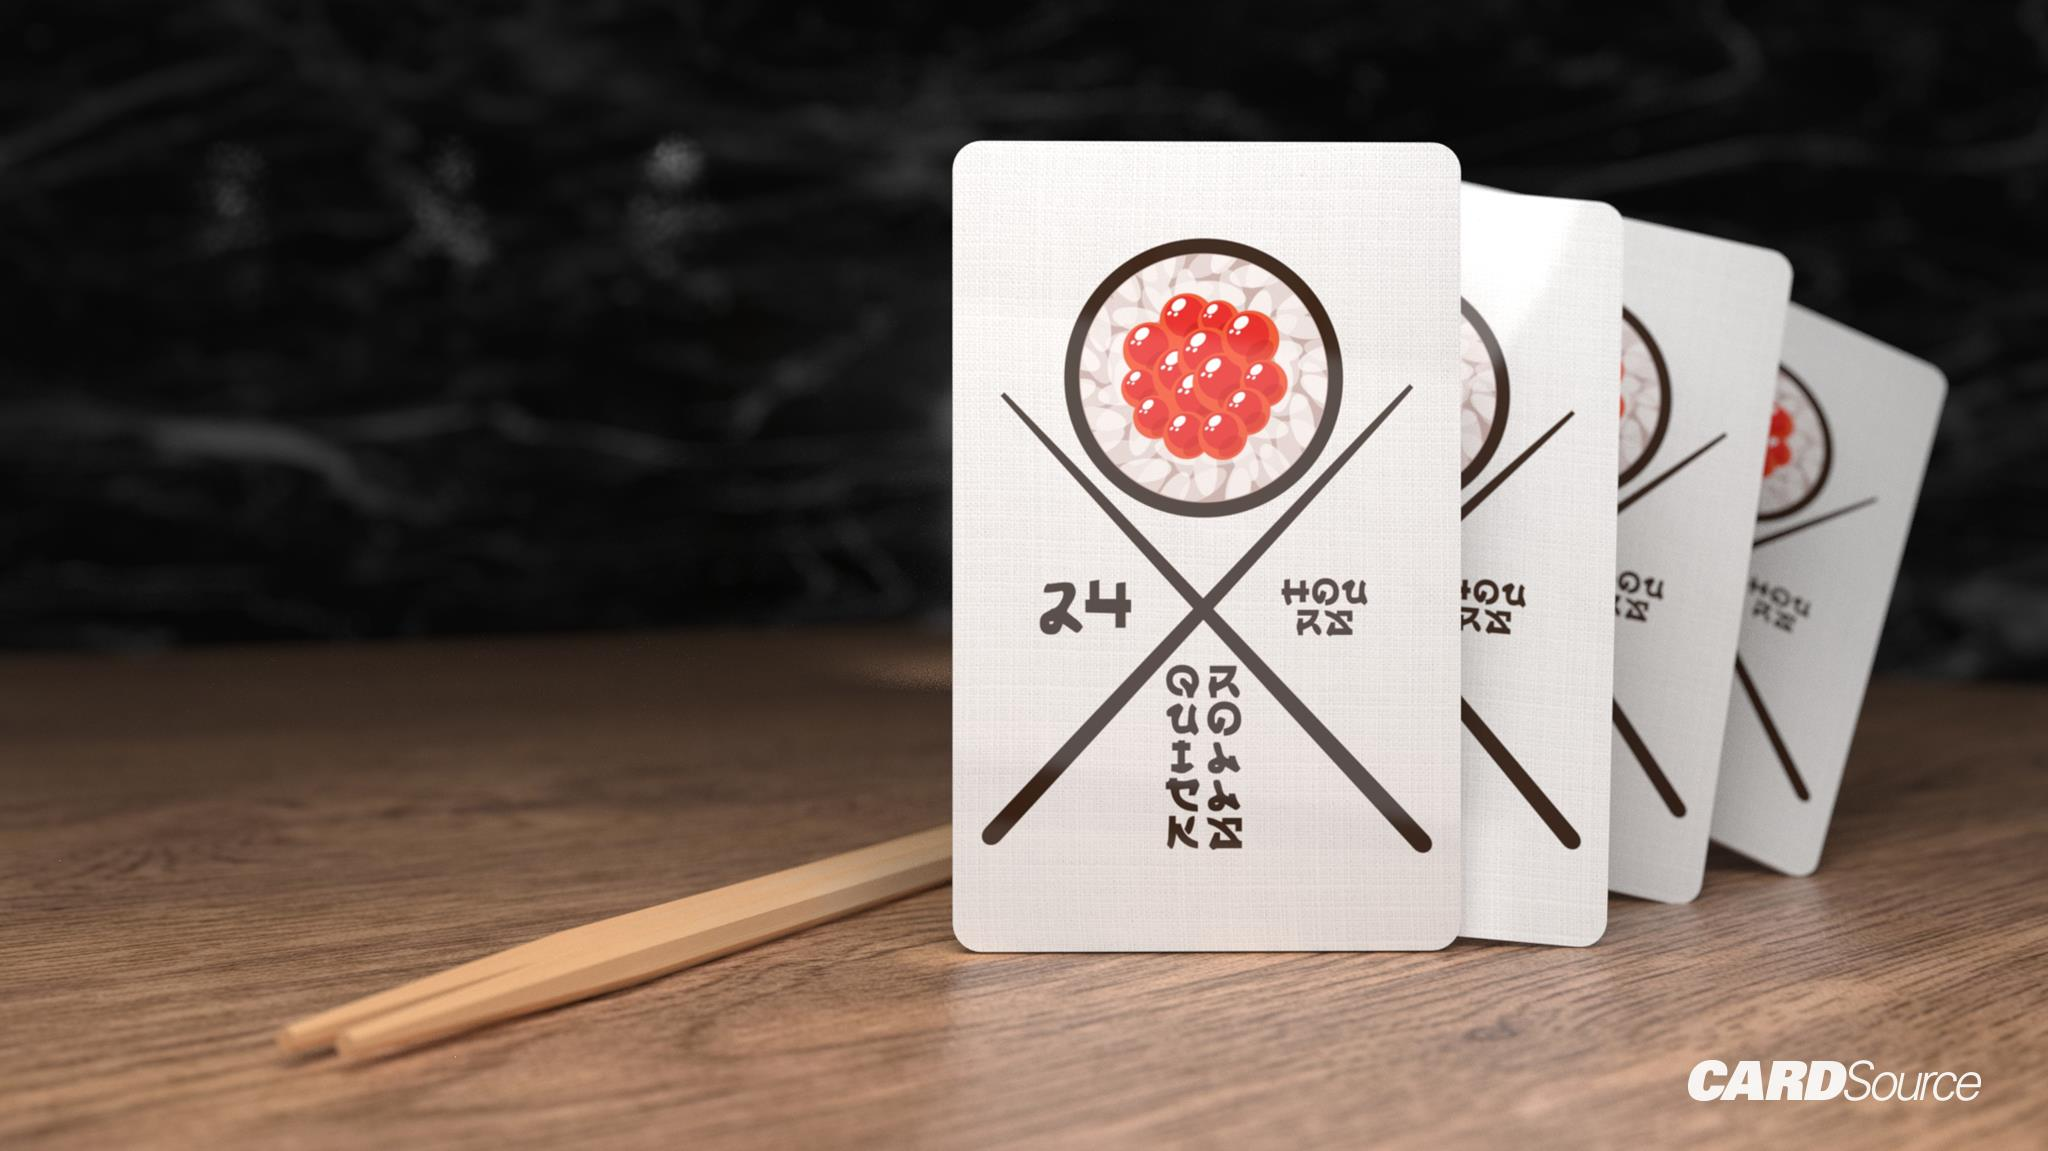 Sushi Card Design, CardSource